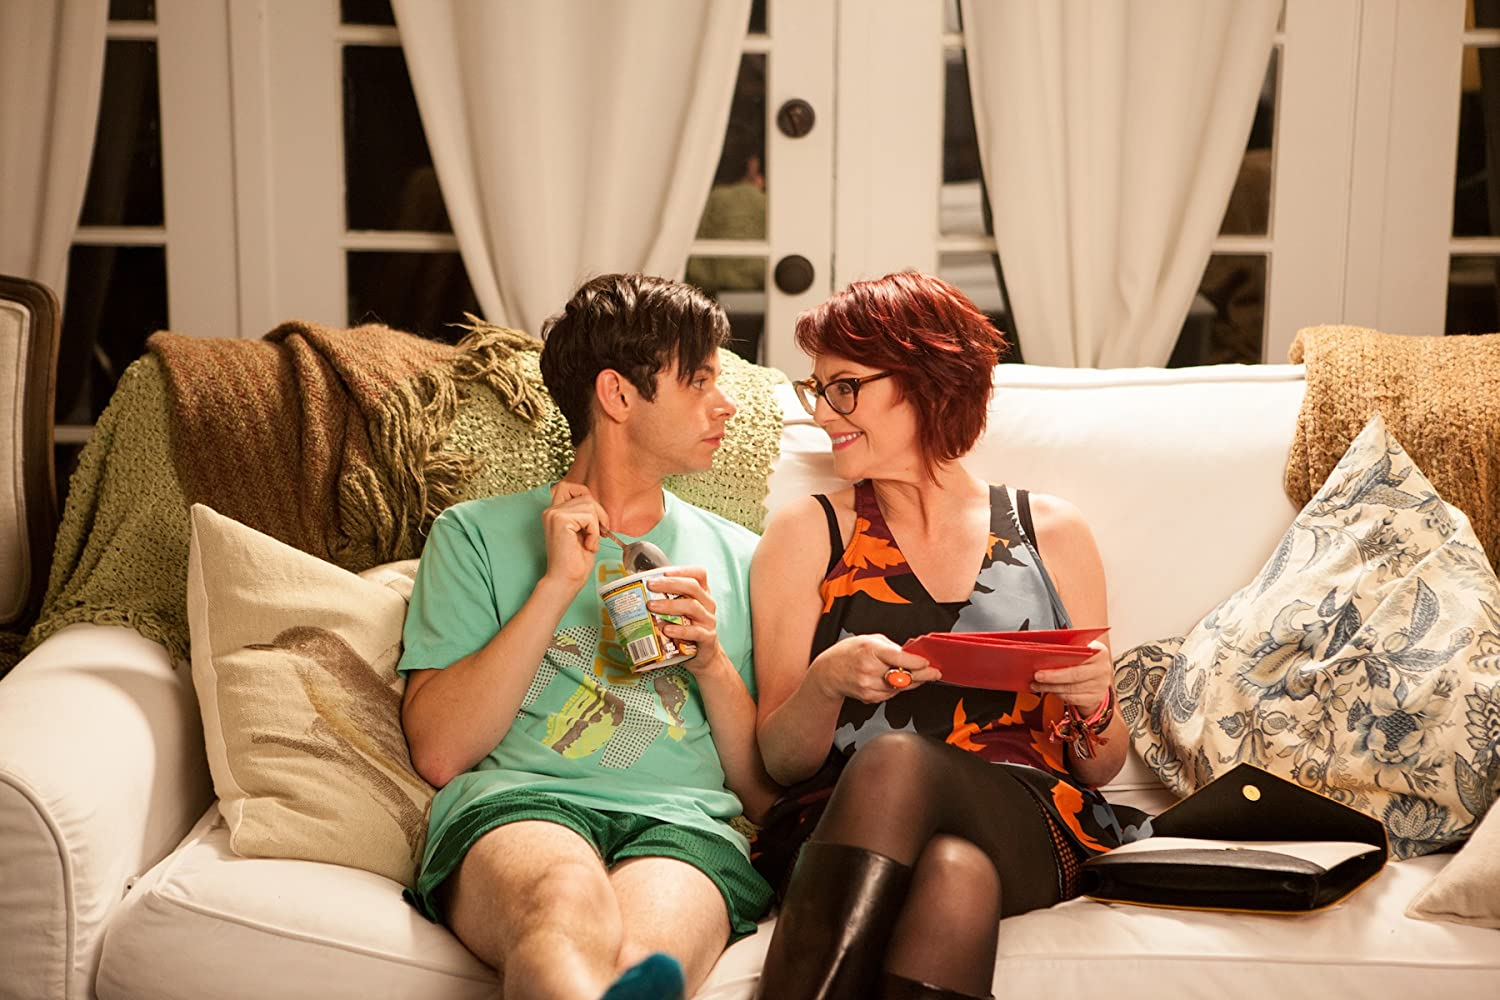 Exclusive: Megan Mullally on the GBF – Gay Best Friend